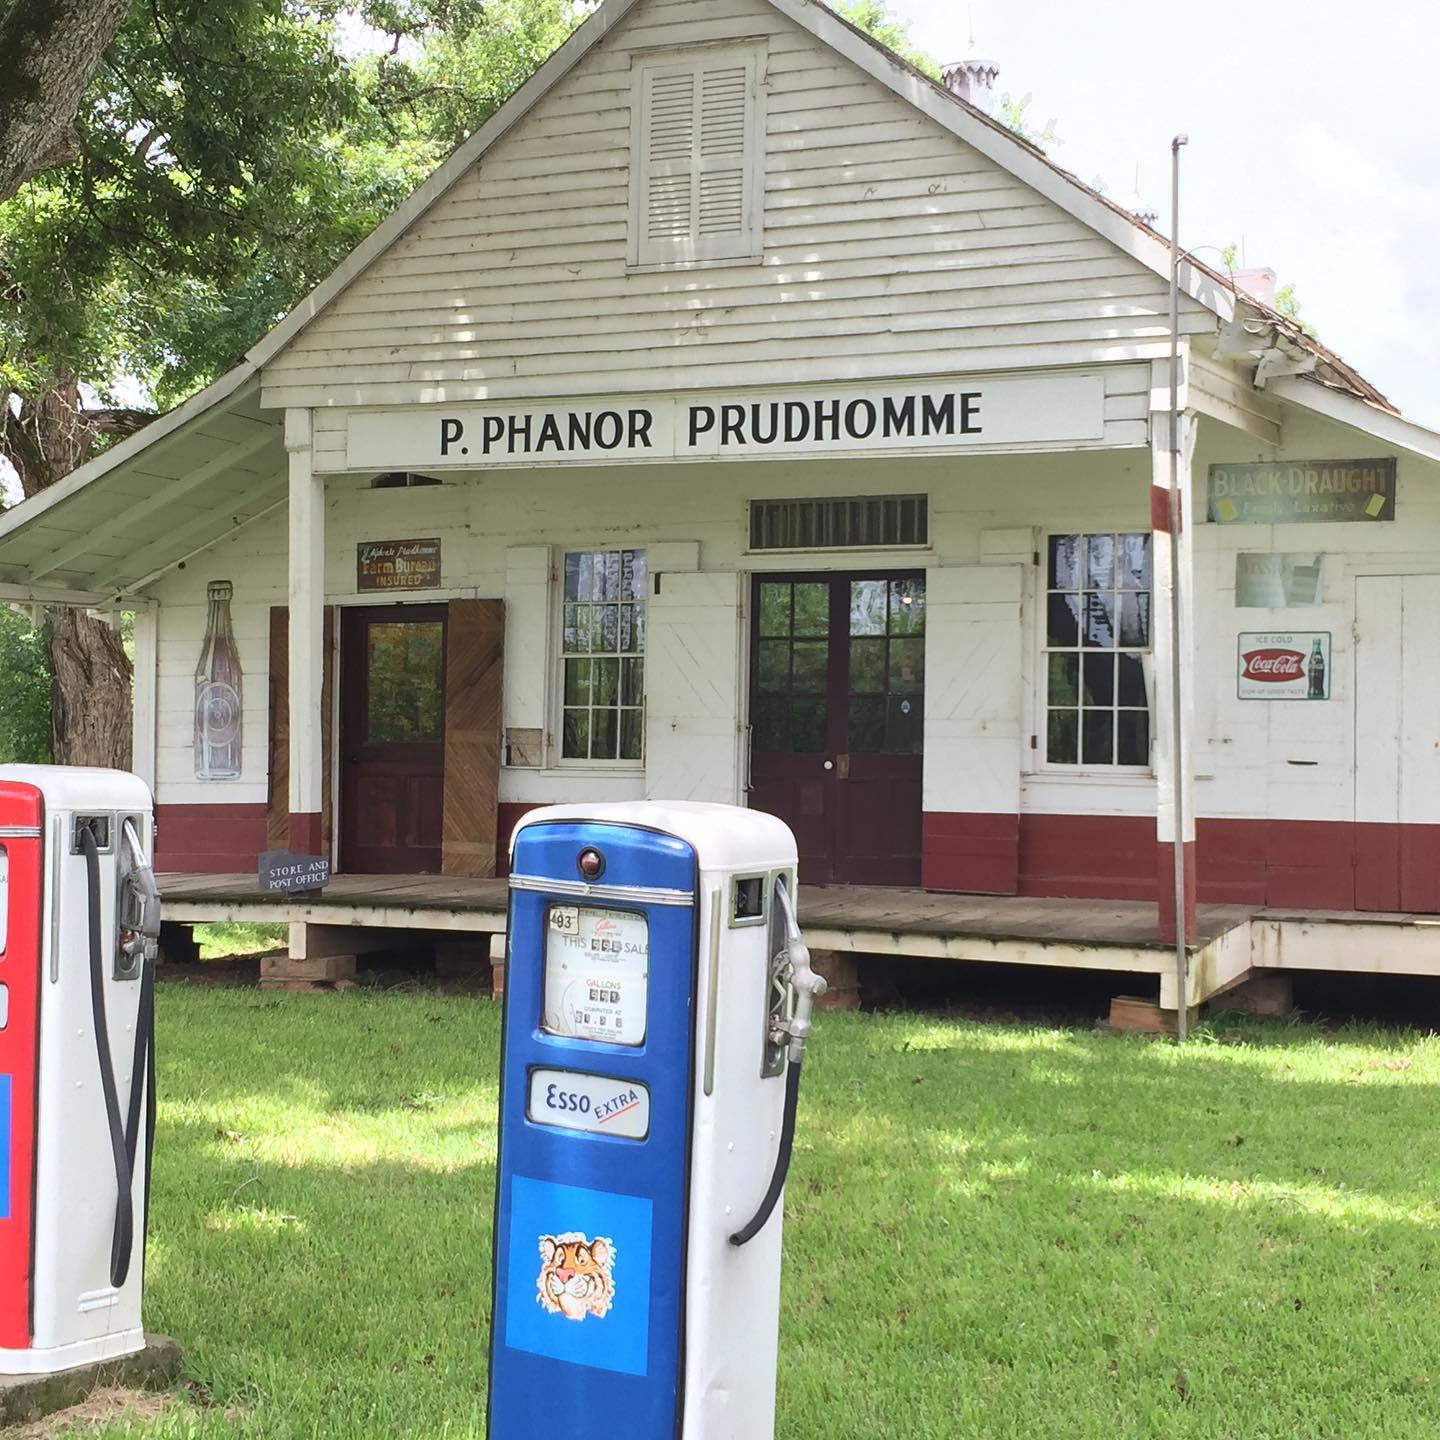 Two gas pumps in front of the Oakland Plantation Store.